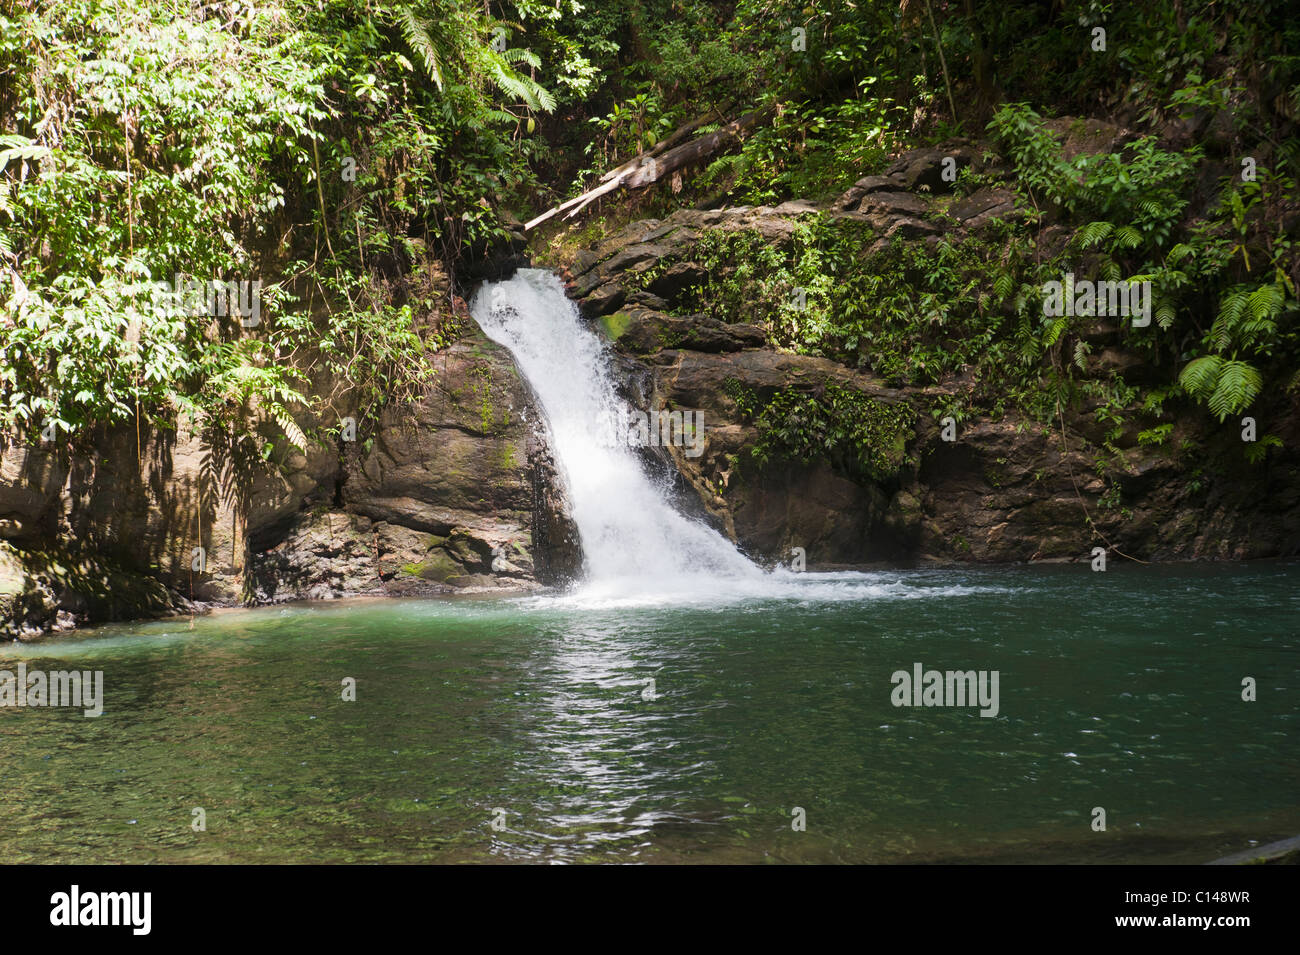 Waterfall in Amazon Rainforest Brazil South America Stock Photo